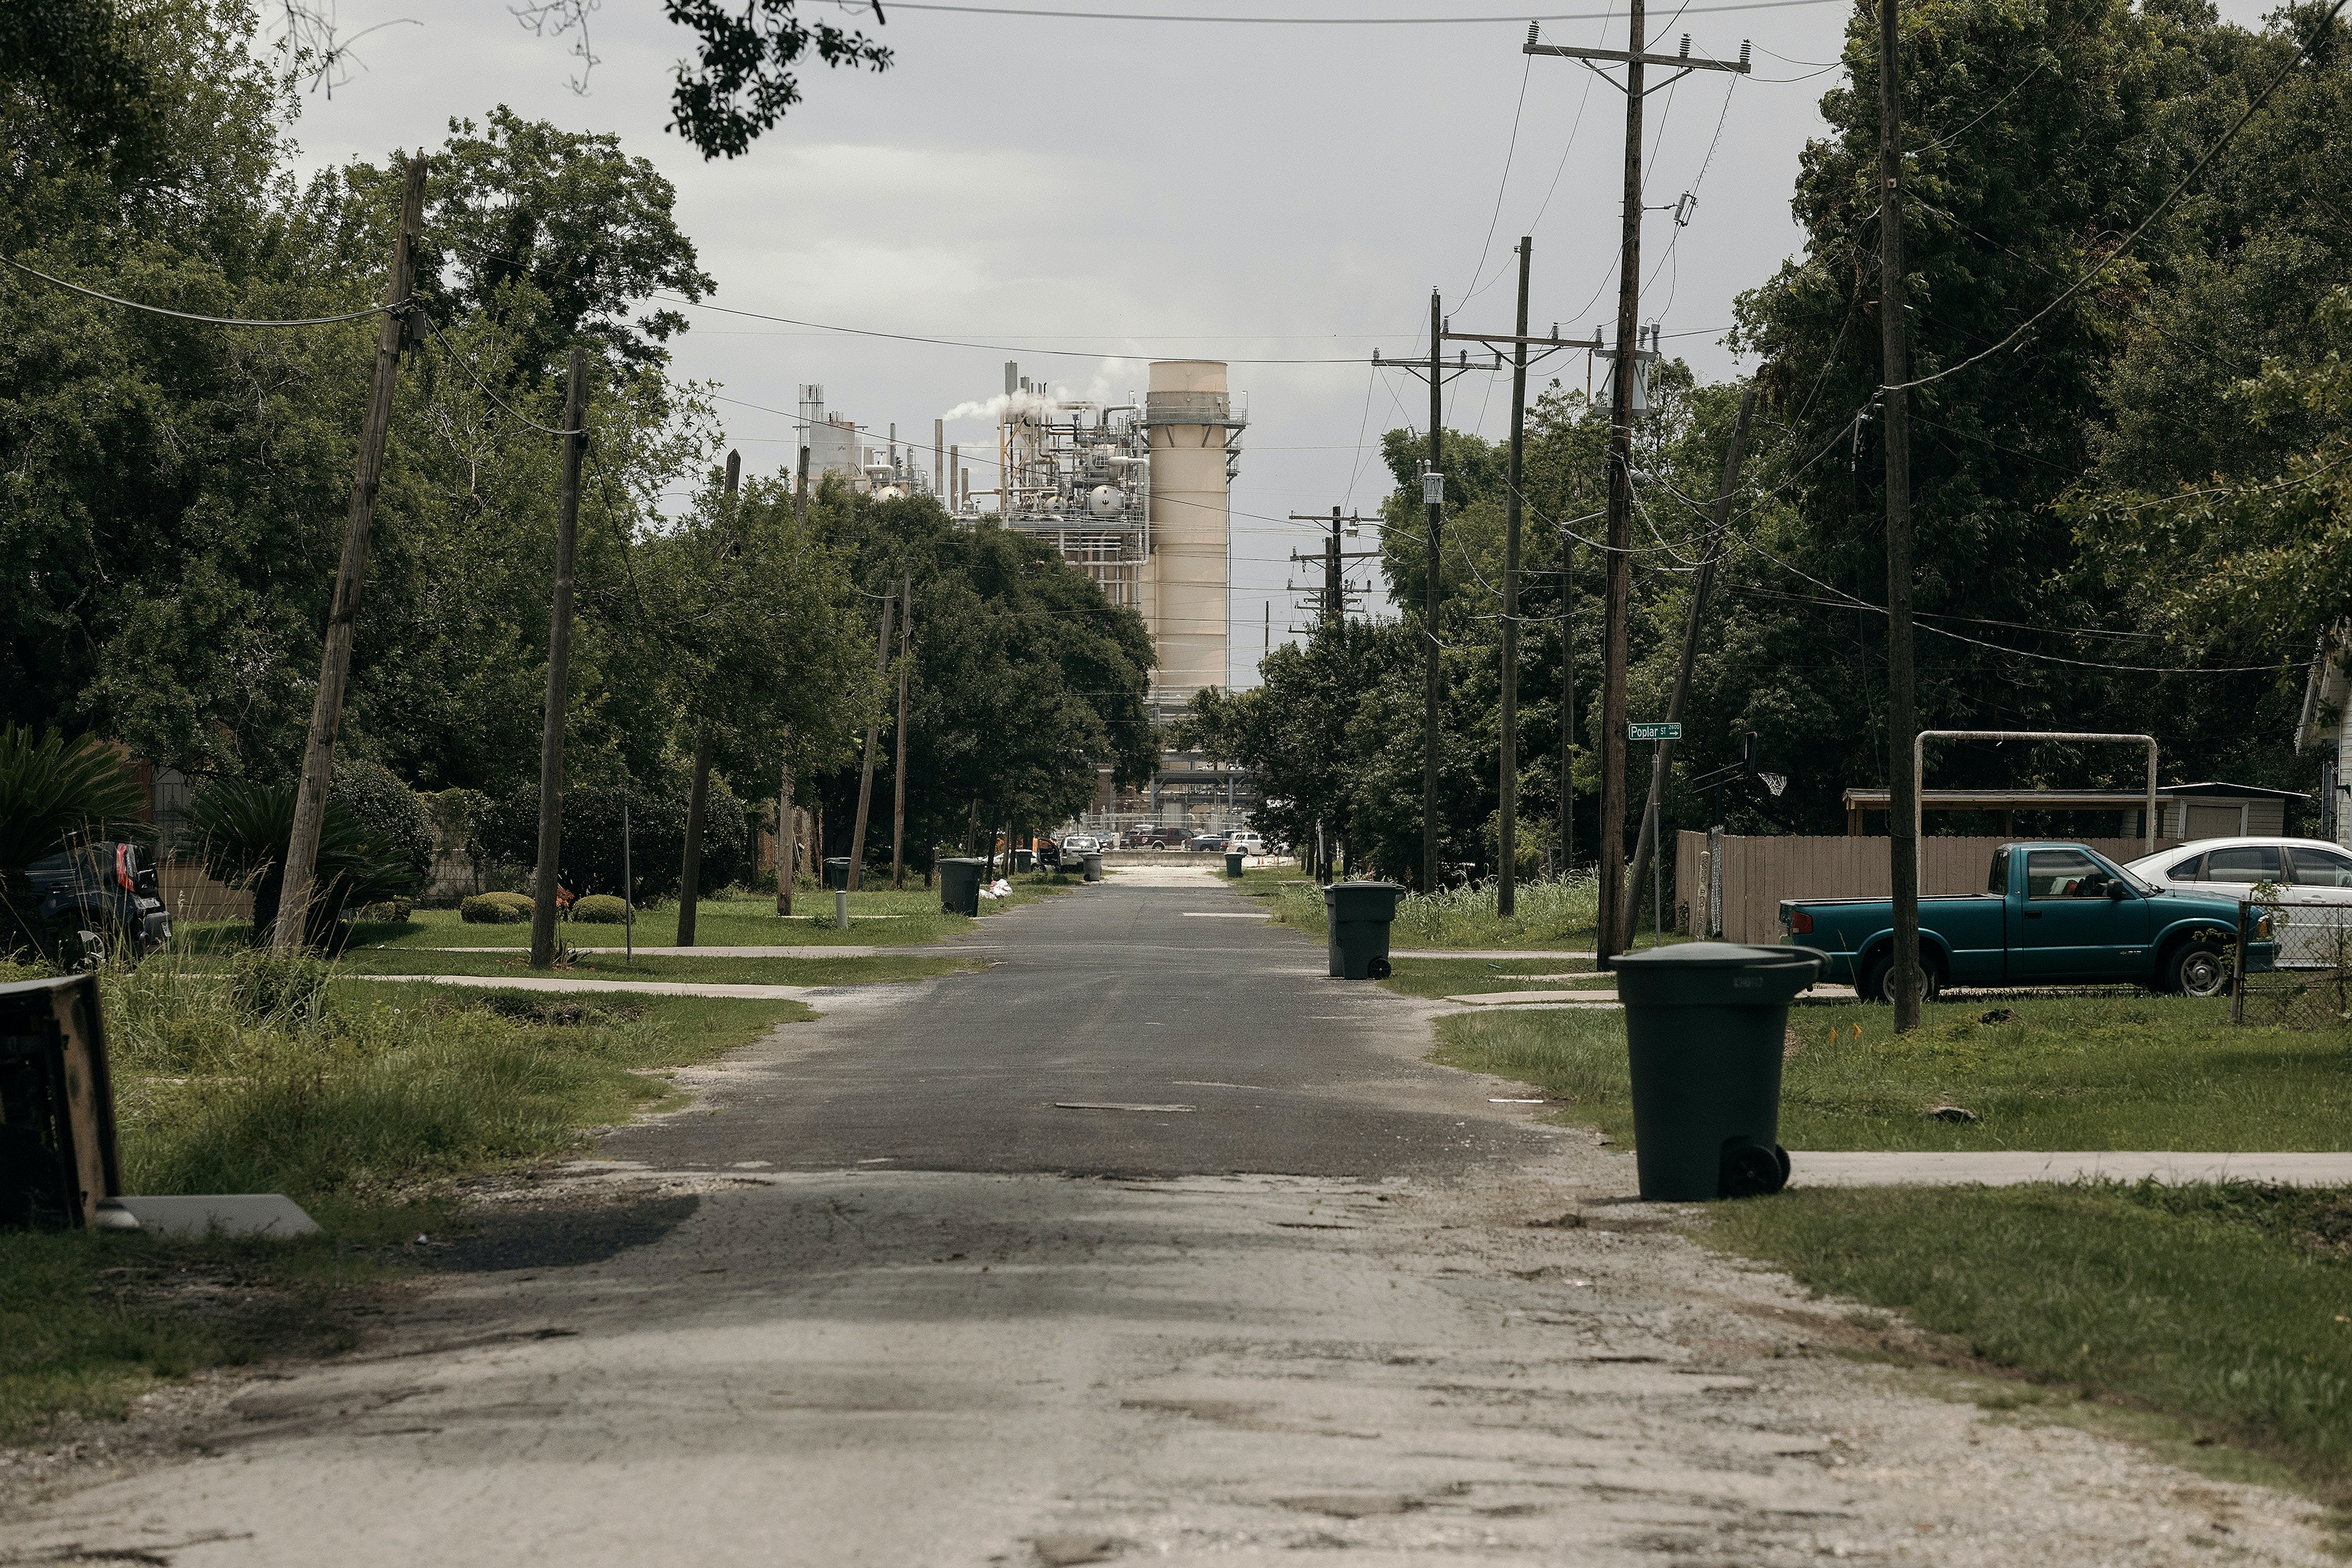 The Exxon refinery as seen from Van Buren Avenue, Tuesday, June 6th, 2017 in Beaumont, Texas.</p><br /><br /><br /><br /><br /><br /><br /><br /> <p>Todd Spoth for The Intercept